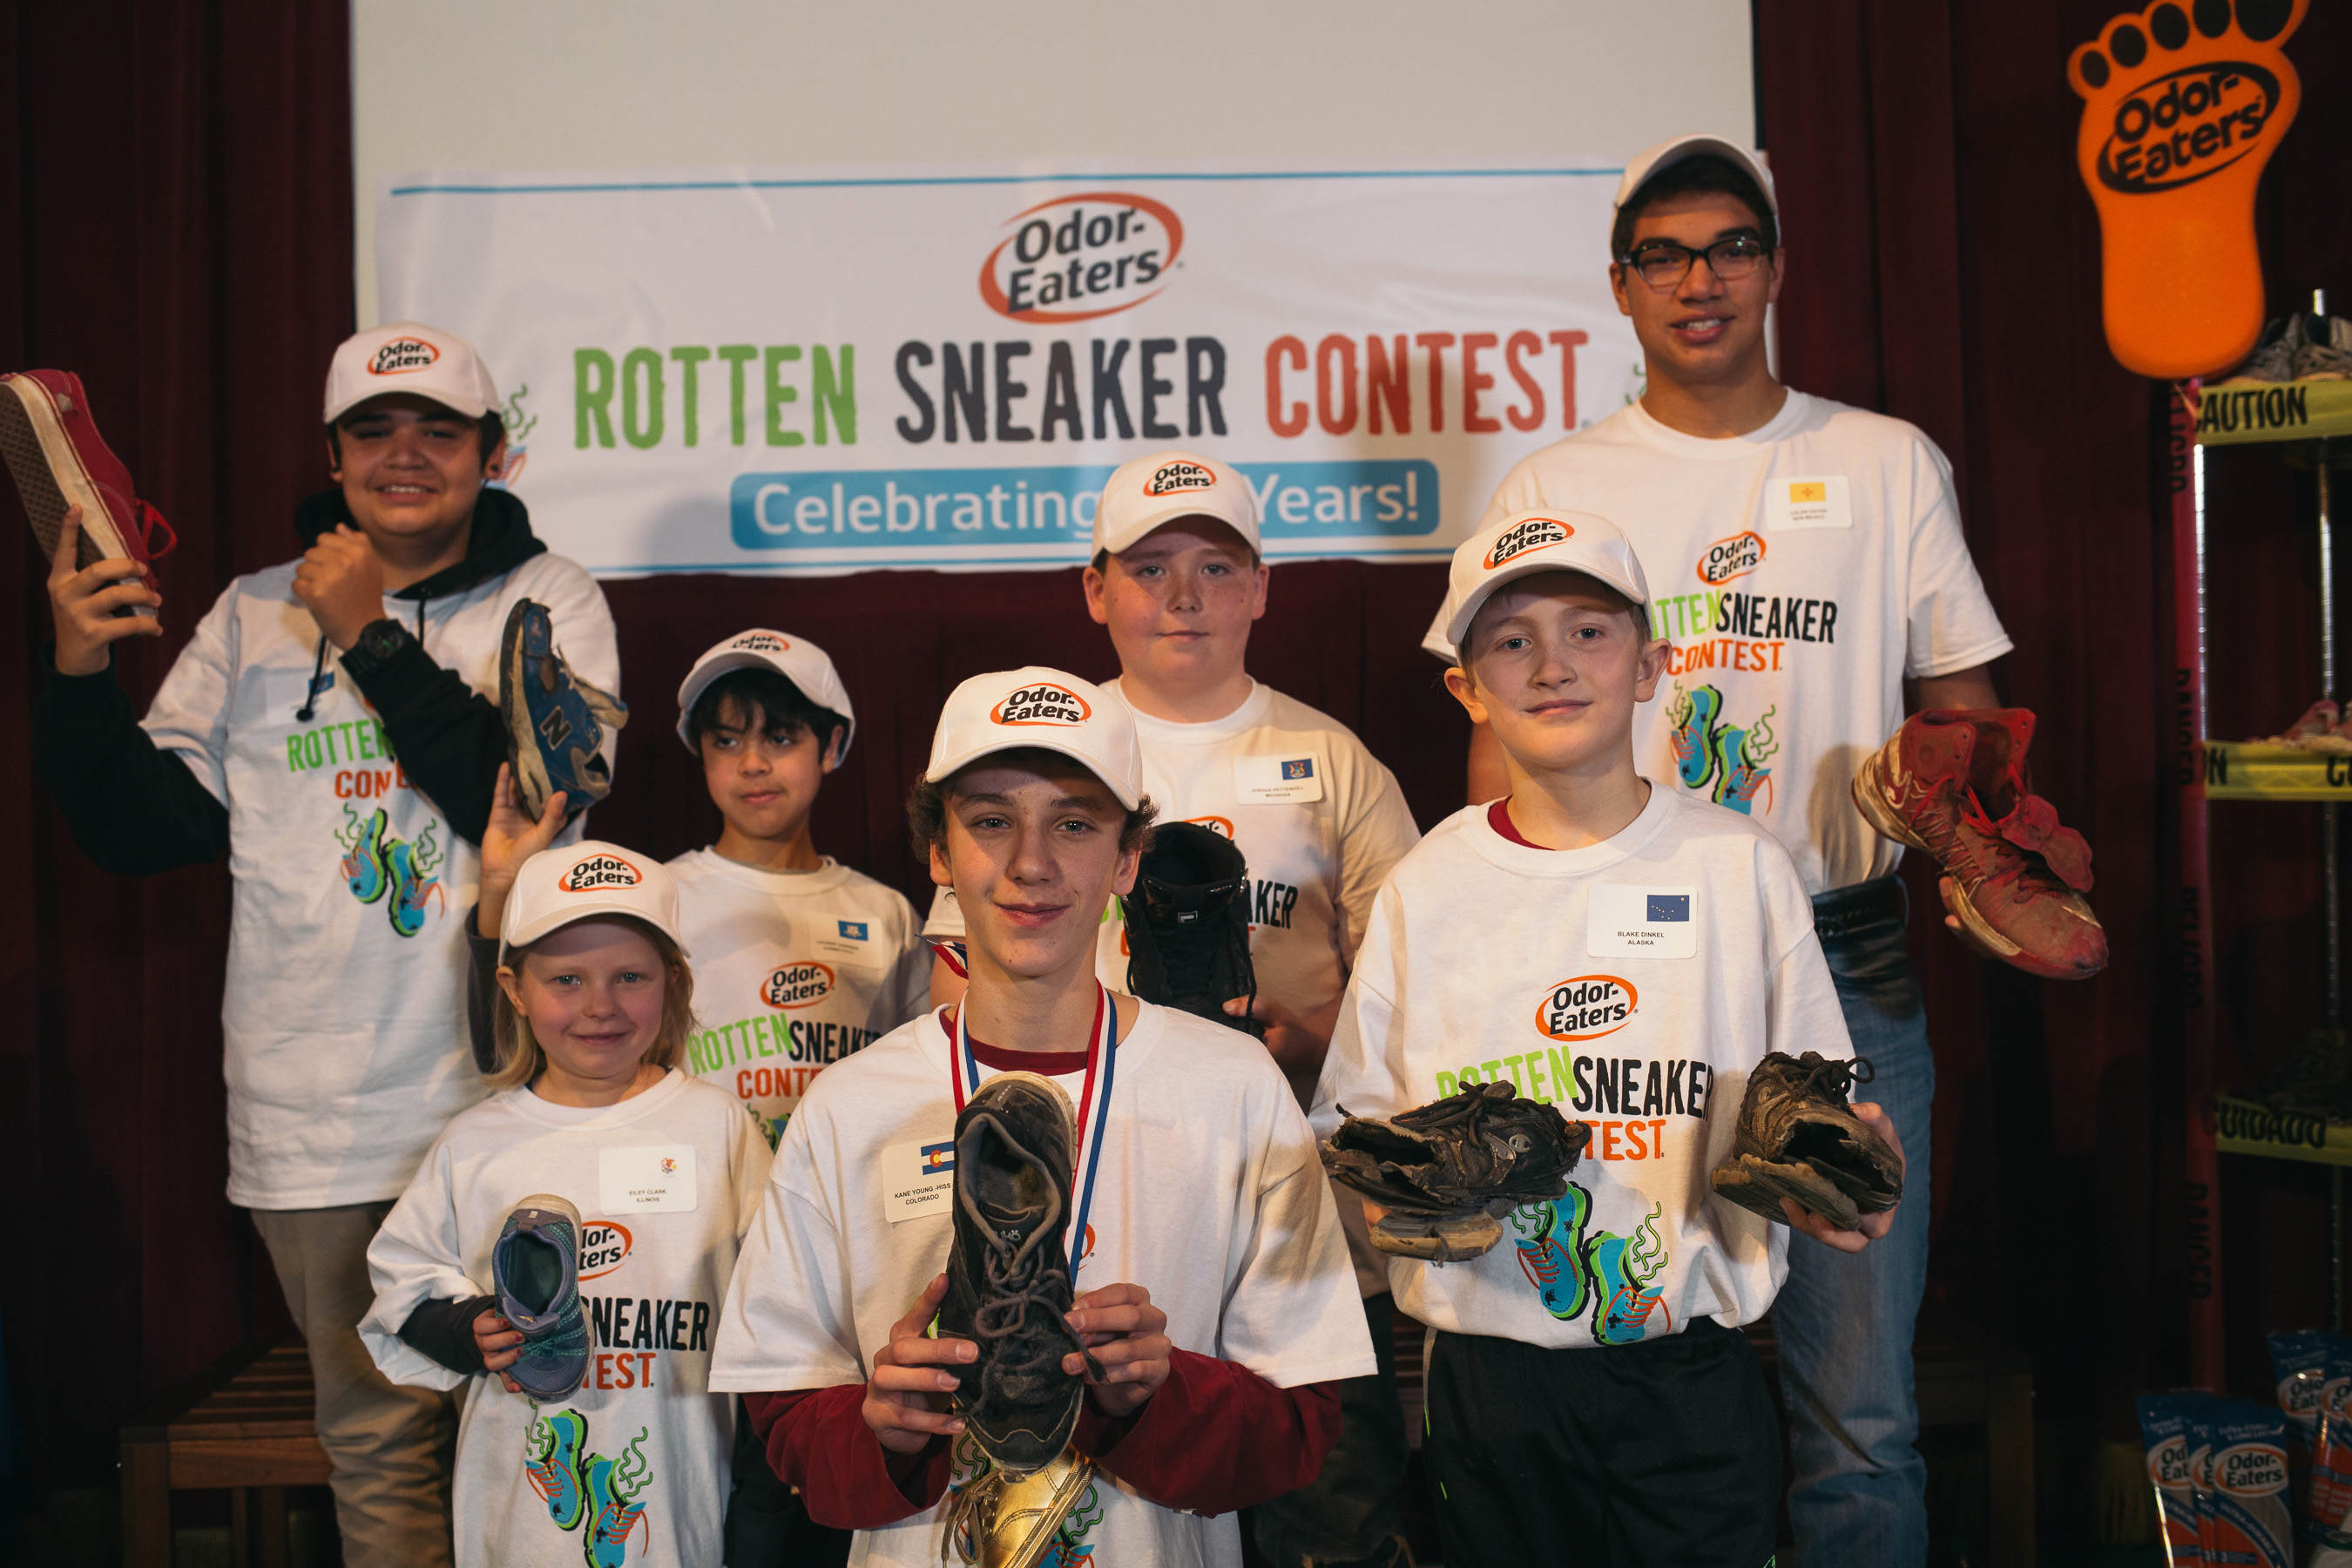 http://www.multivu.com/players/English/7412551-40th-odor-eaters-rotten-sneaker-contest/gallery/image/ac7a4423-7321-4a48-b693-fe5911c57004.HR.jpg